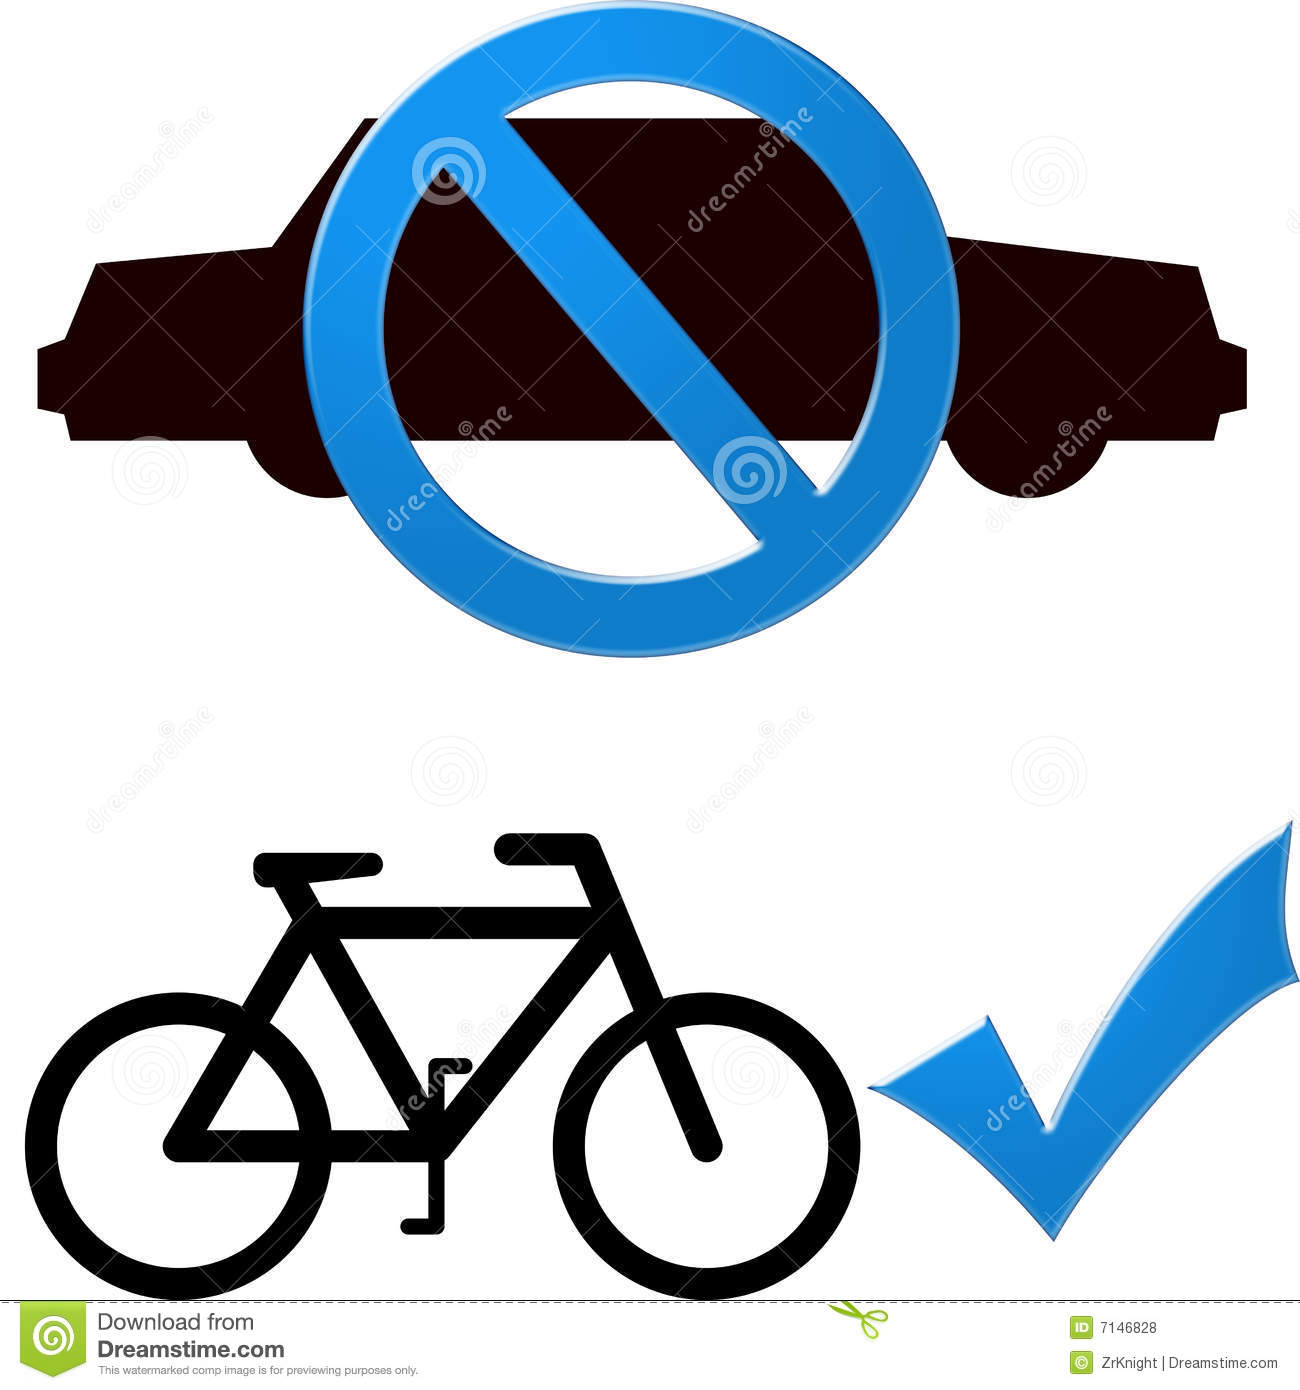 Car And Bicycle Royalty Free Stock Photos Image 7146828